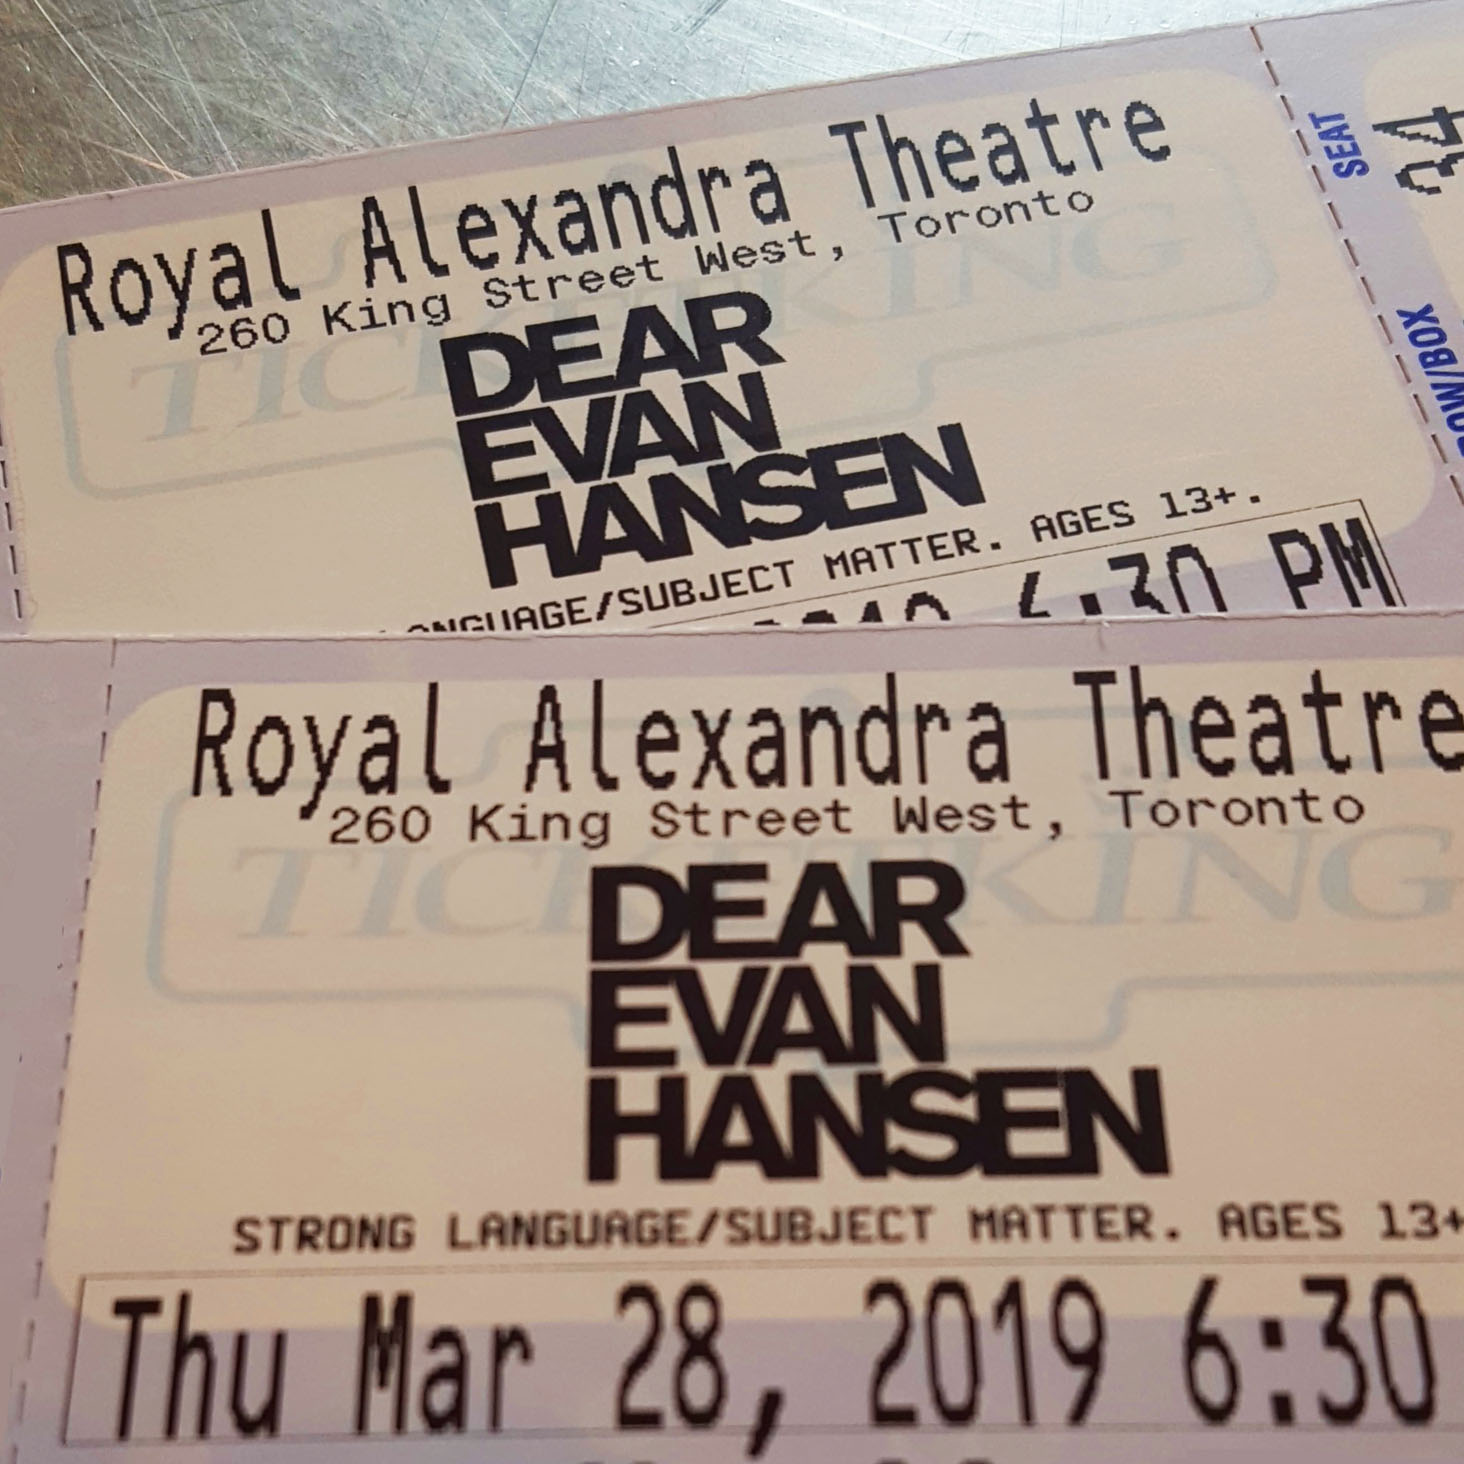 dear evan hansen tickets, reviews